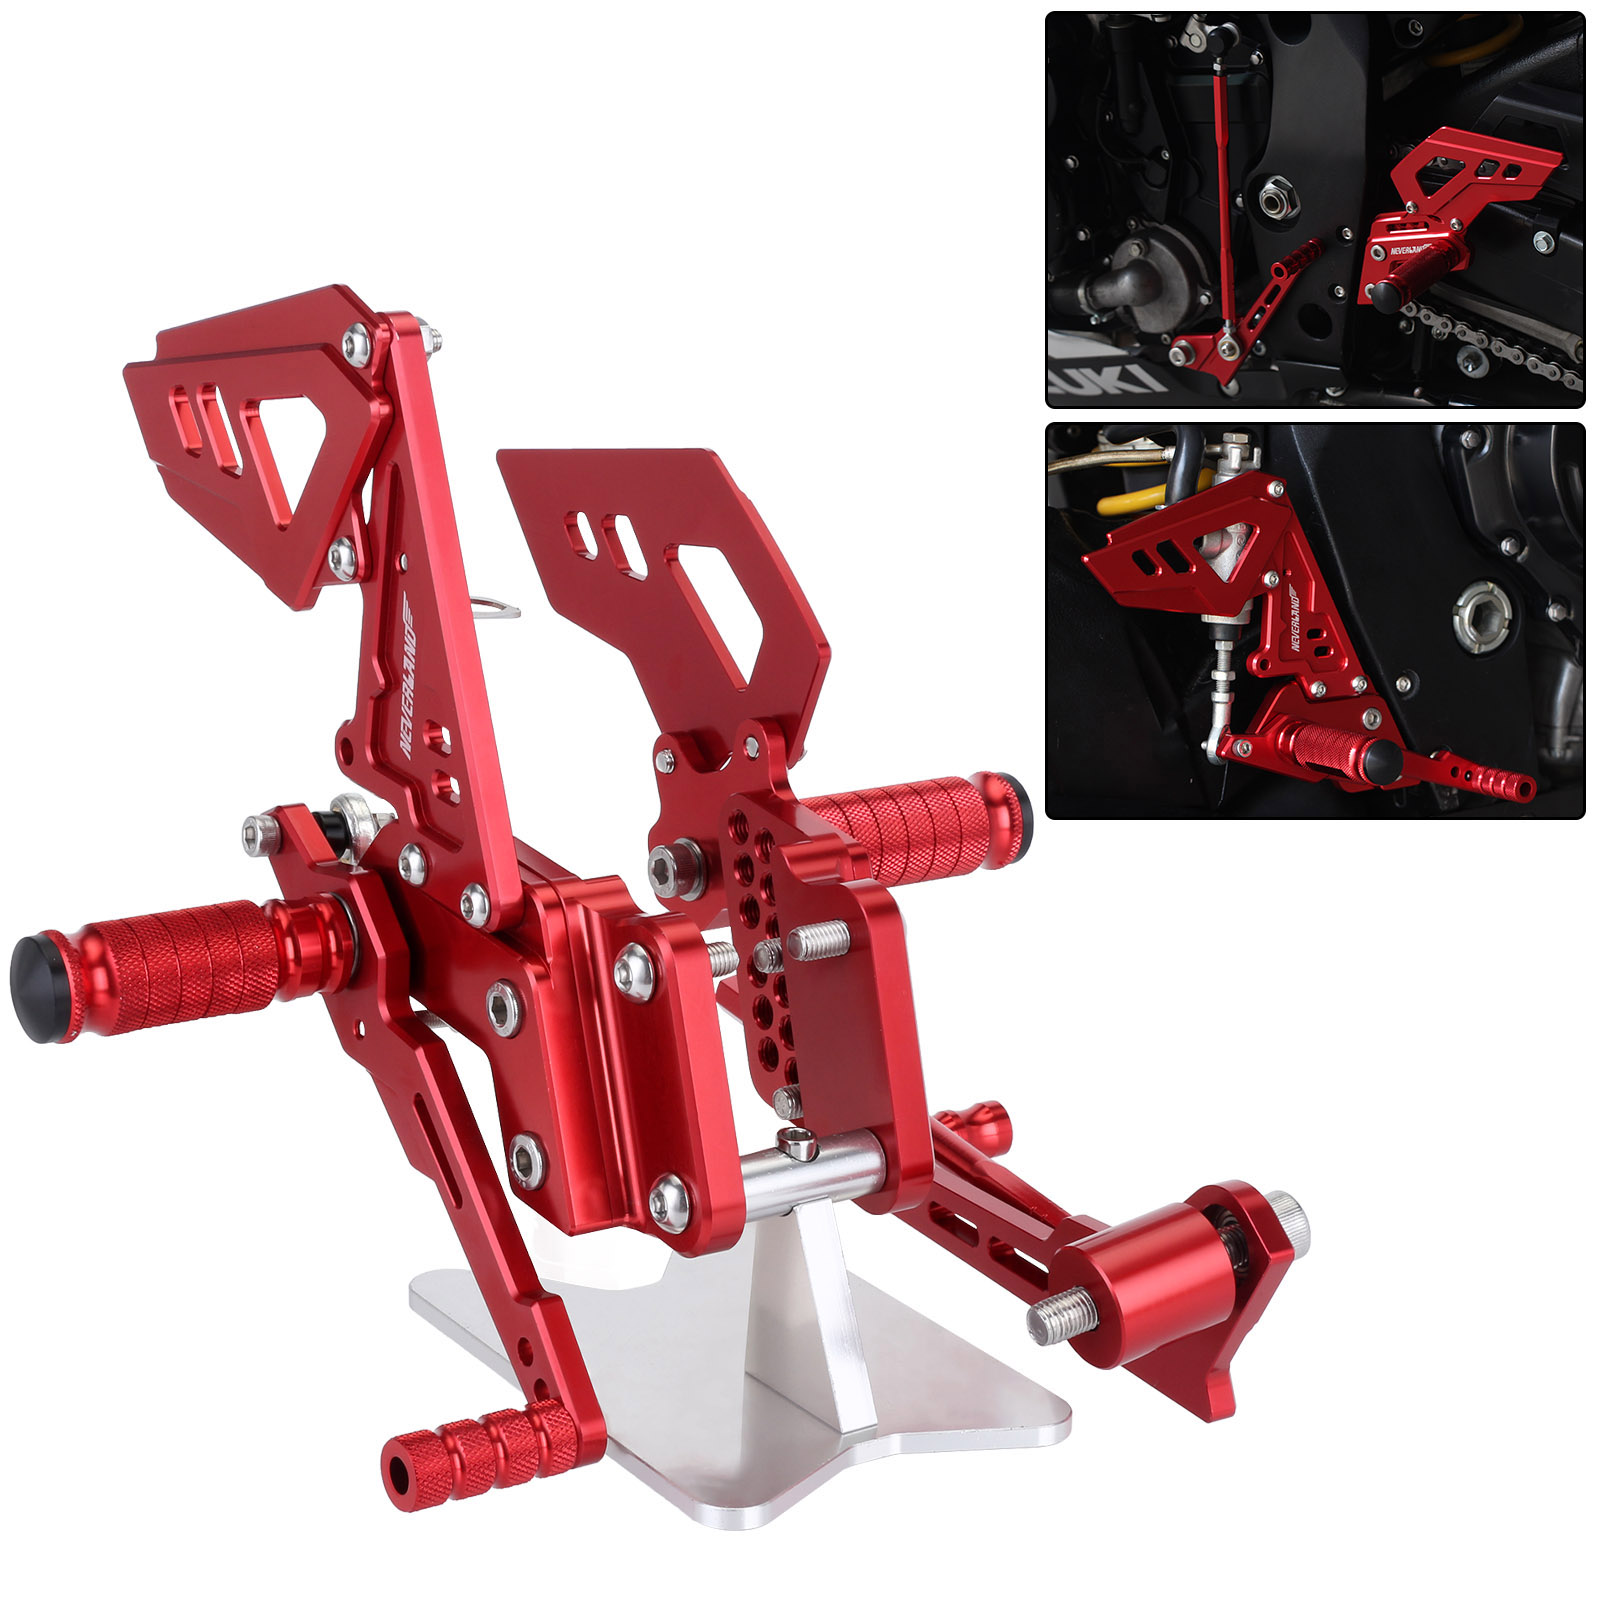 Red B Style Motorcycle Footrest Rear Foot Pedal Pegs Set For Suzuli GSX R 600 750 GSX-R GSXR D40